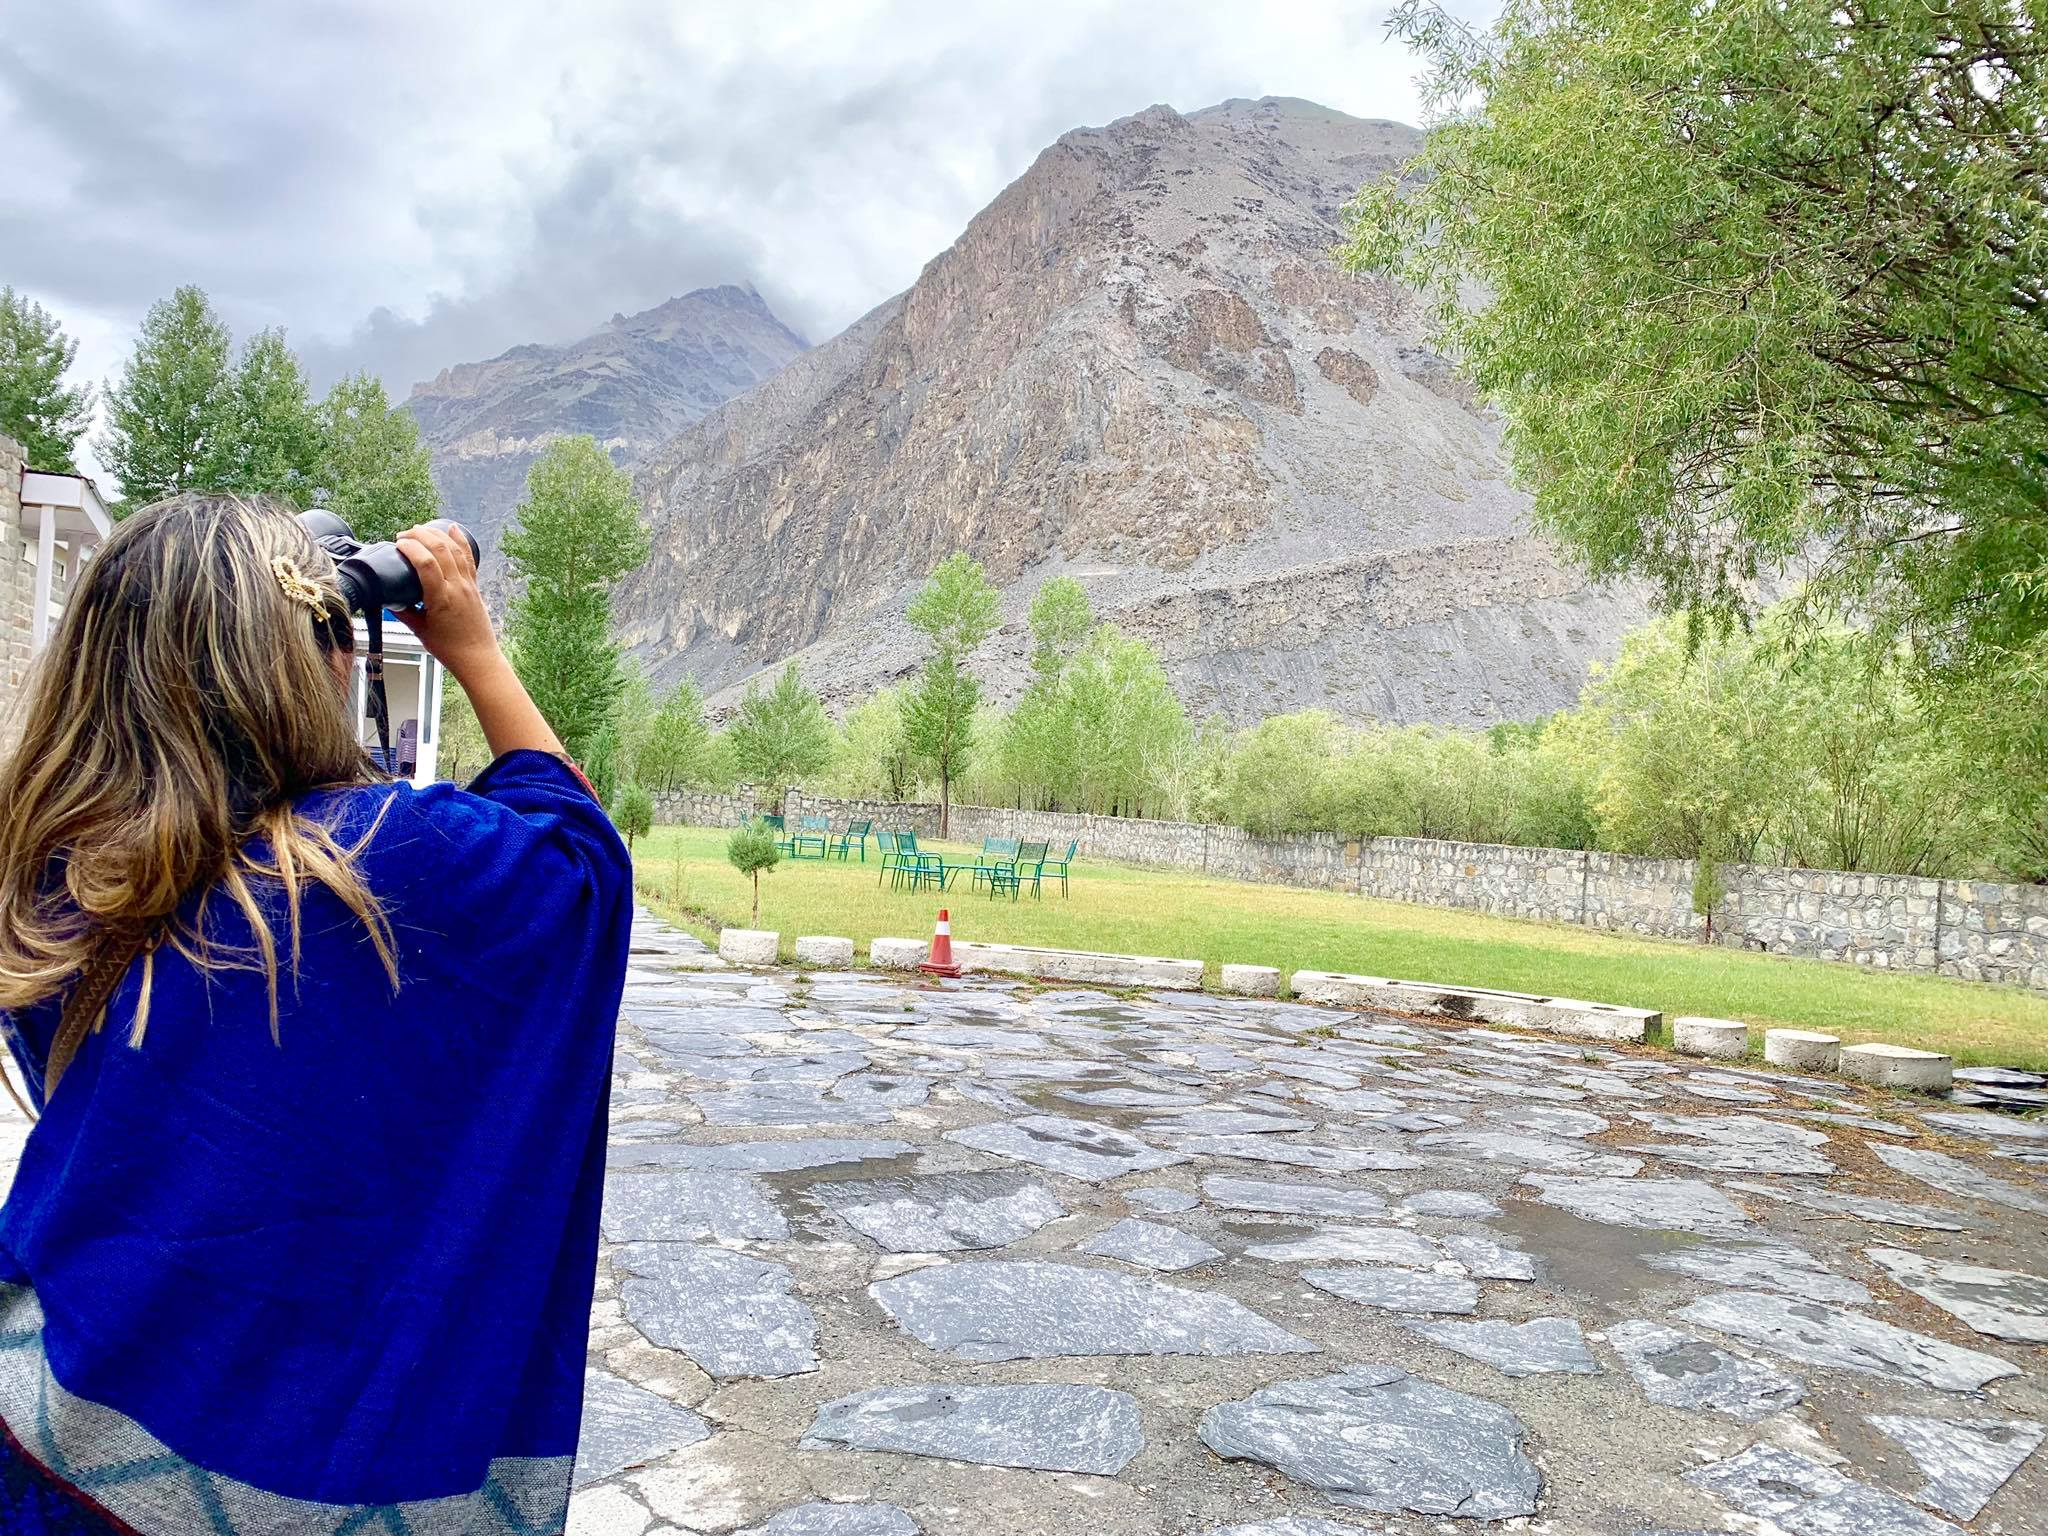 Kach Solo Travels in 2019 Driving in North Hunza Valley to Khunjerab Pass18.jpg